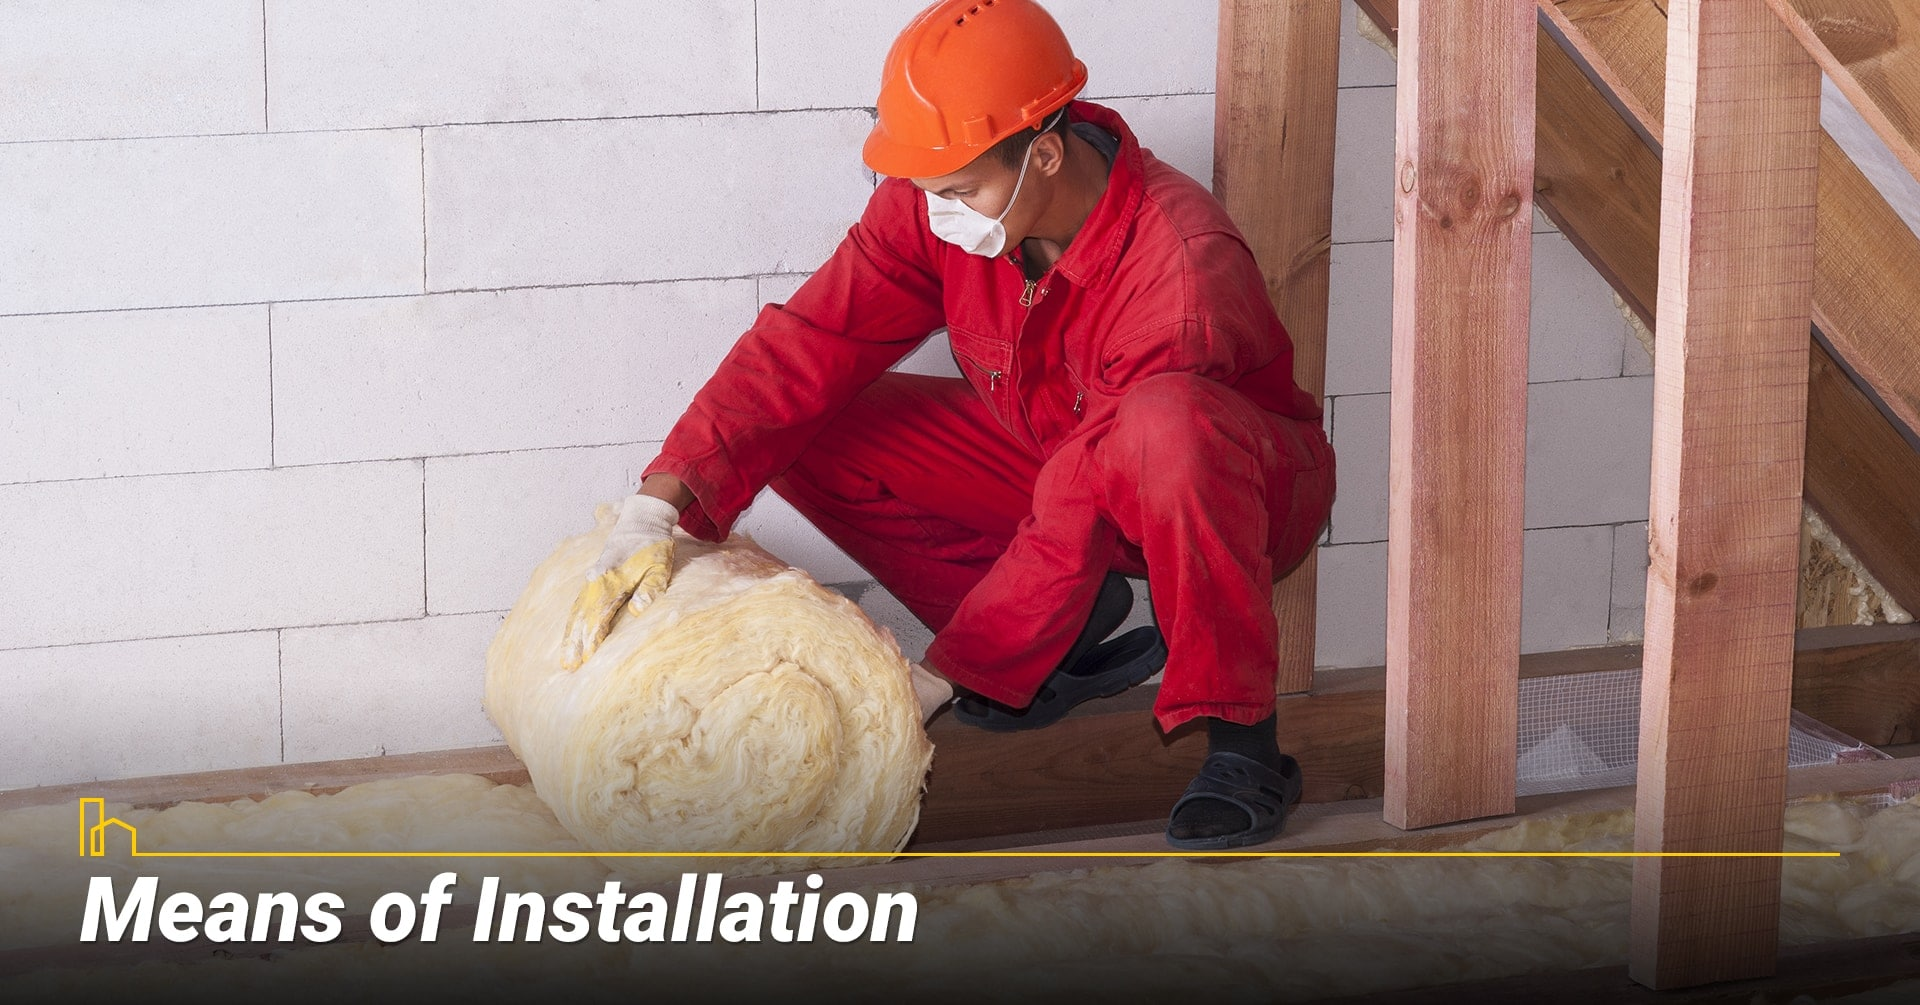 Means of Installation, ways to install insulation